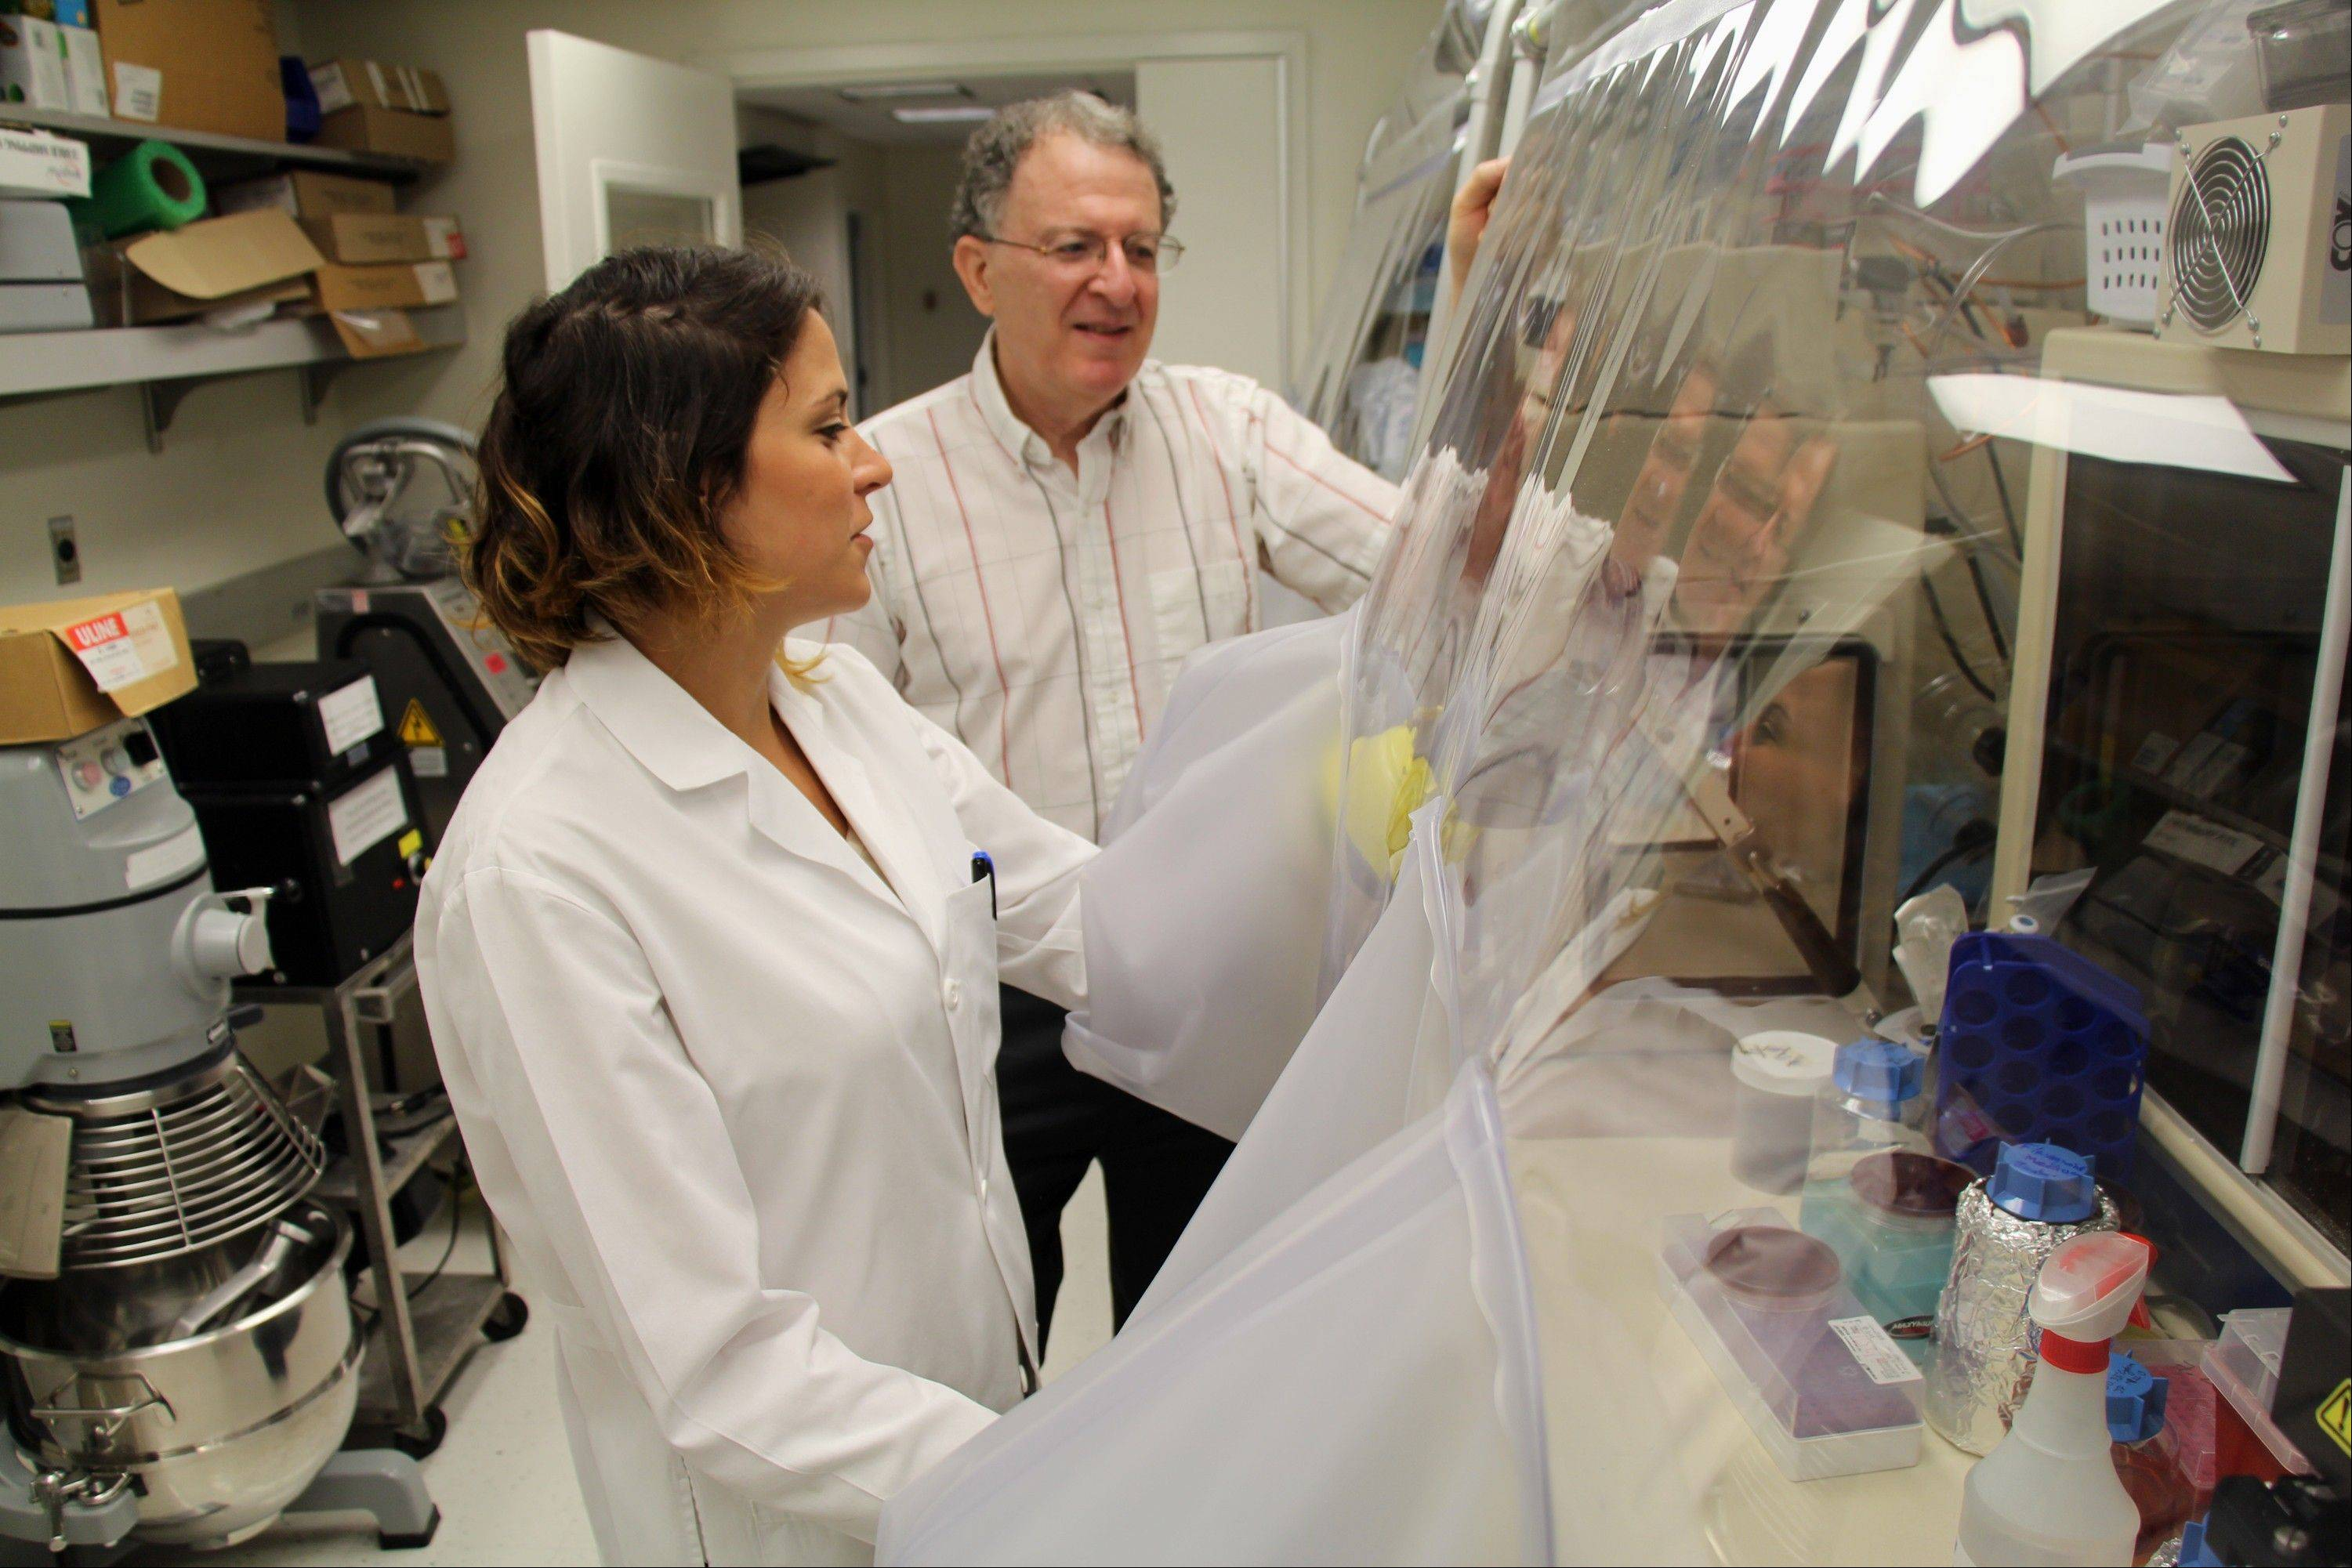 Dr. Jeffrey Gordon and graduate student Vanessa Ridaura of Washington University in St. Louis example samples of gut bacteria taken from fat or lean people. Their research transplanted human intestinal microbes into germ-free mice and found certain bugs may help fight obesity.